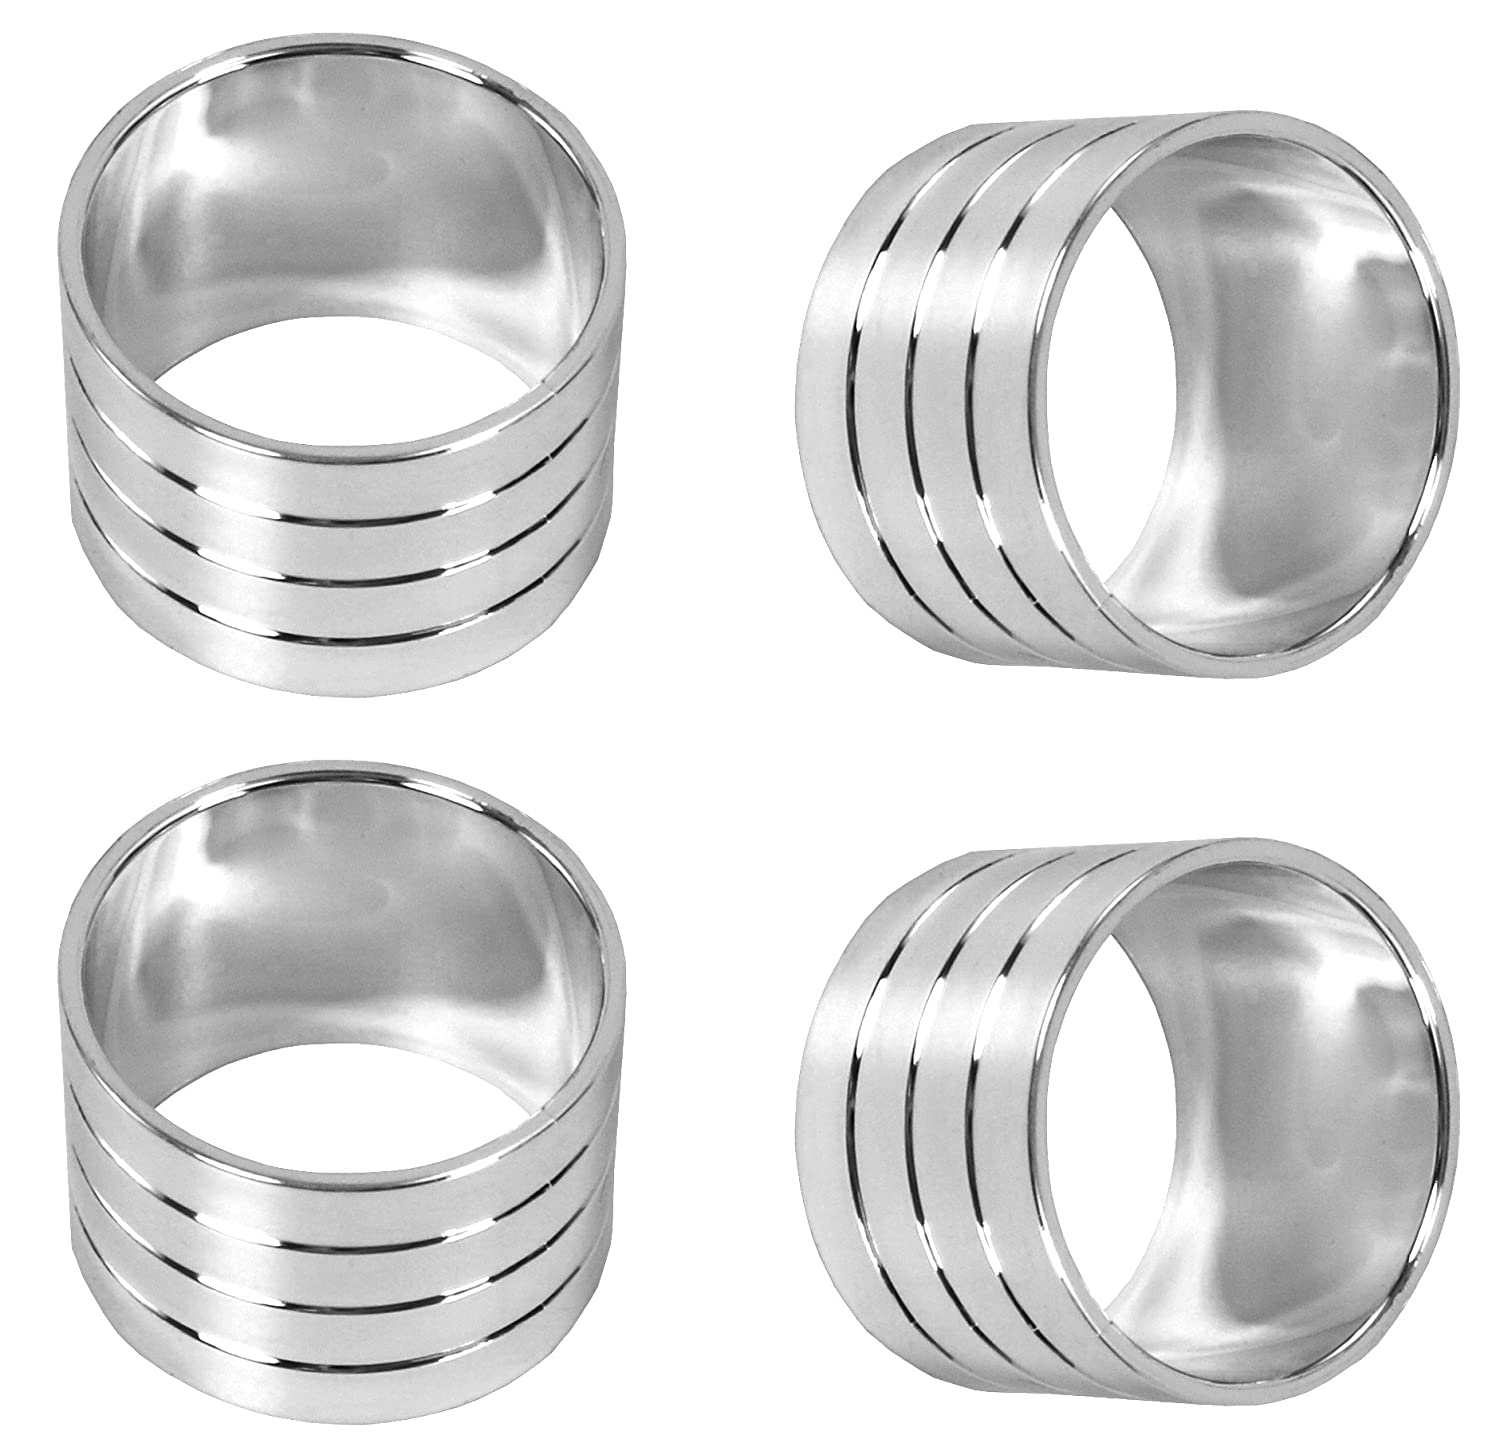 Blake And Croft Napkin Rings - Chrome Colored - 36 Rings Regent